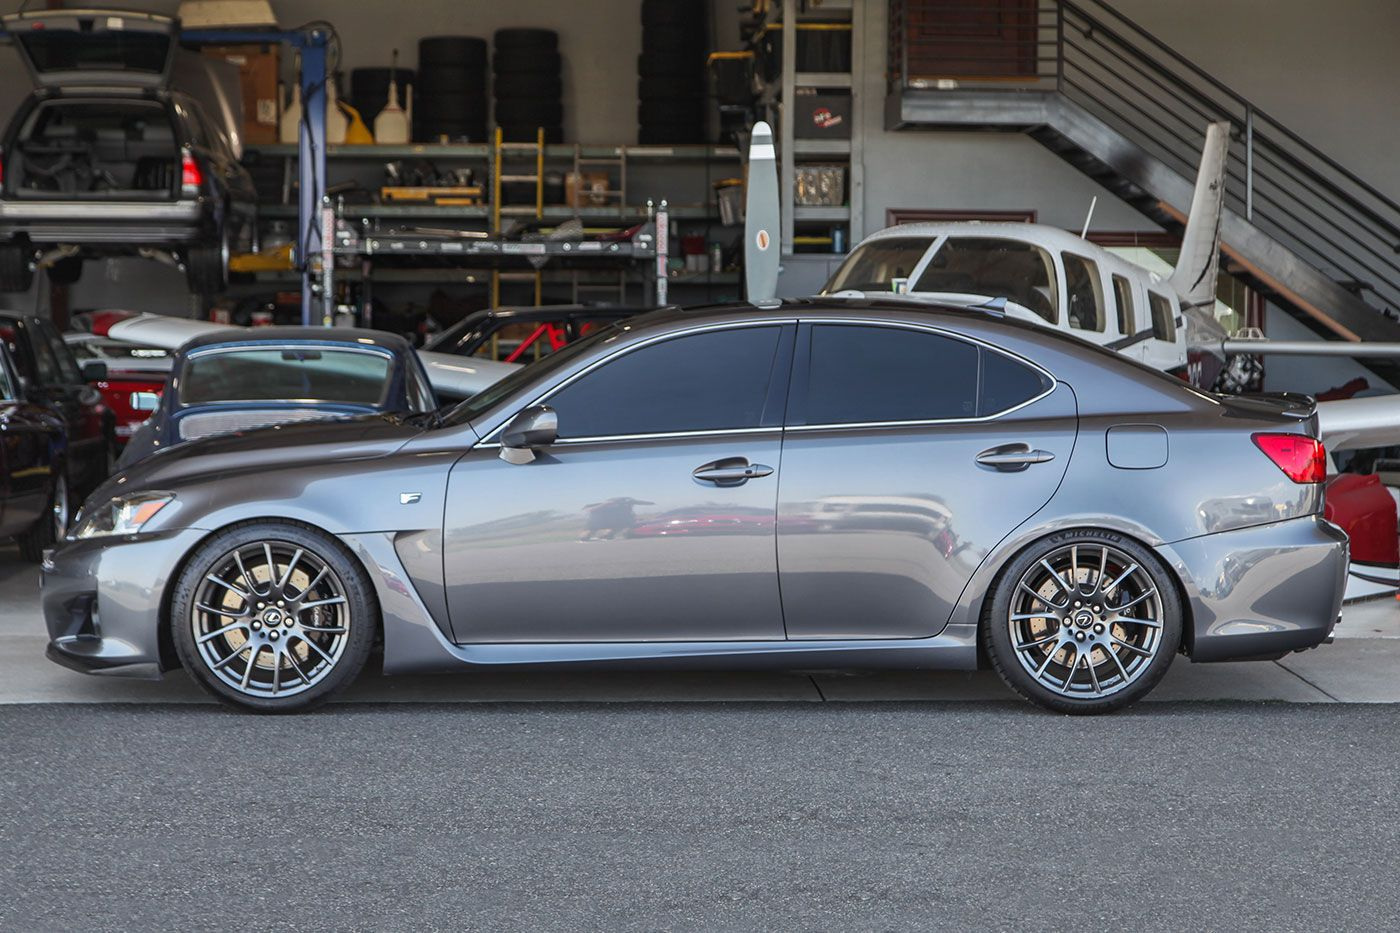 2012 Lexus IS-F exterior photo